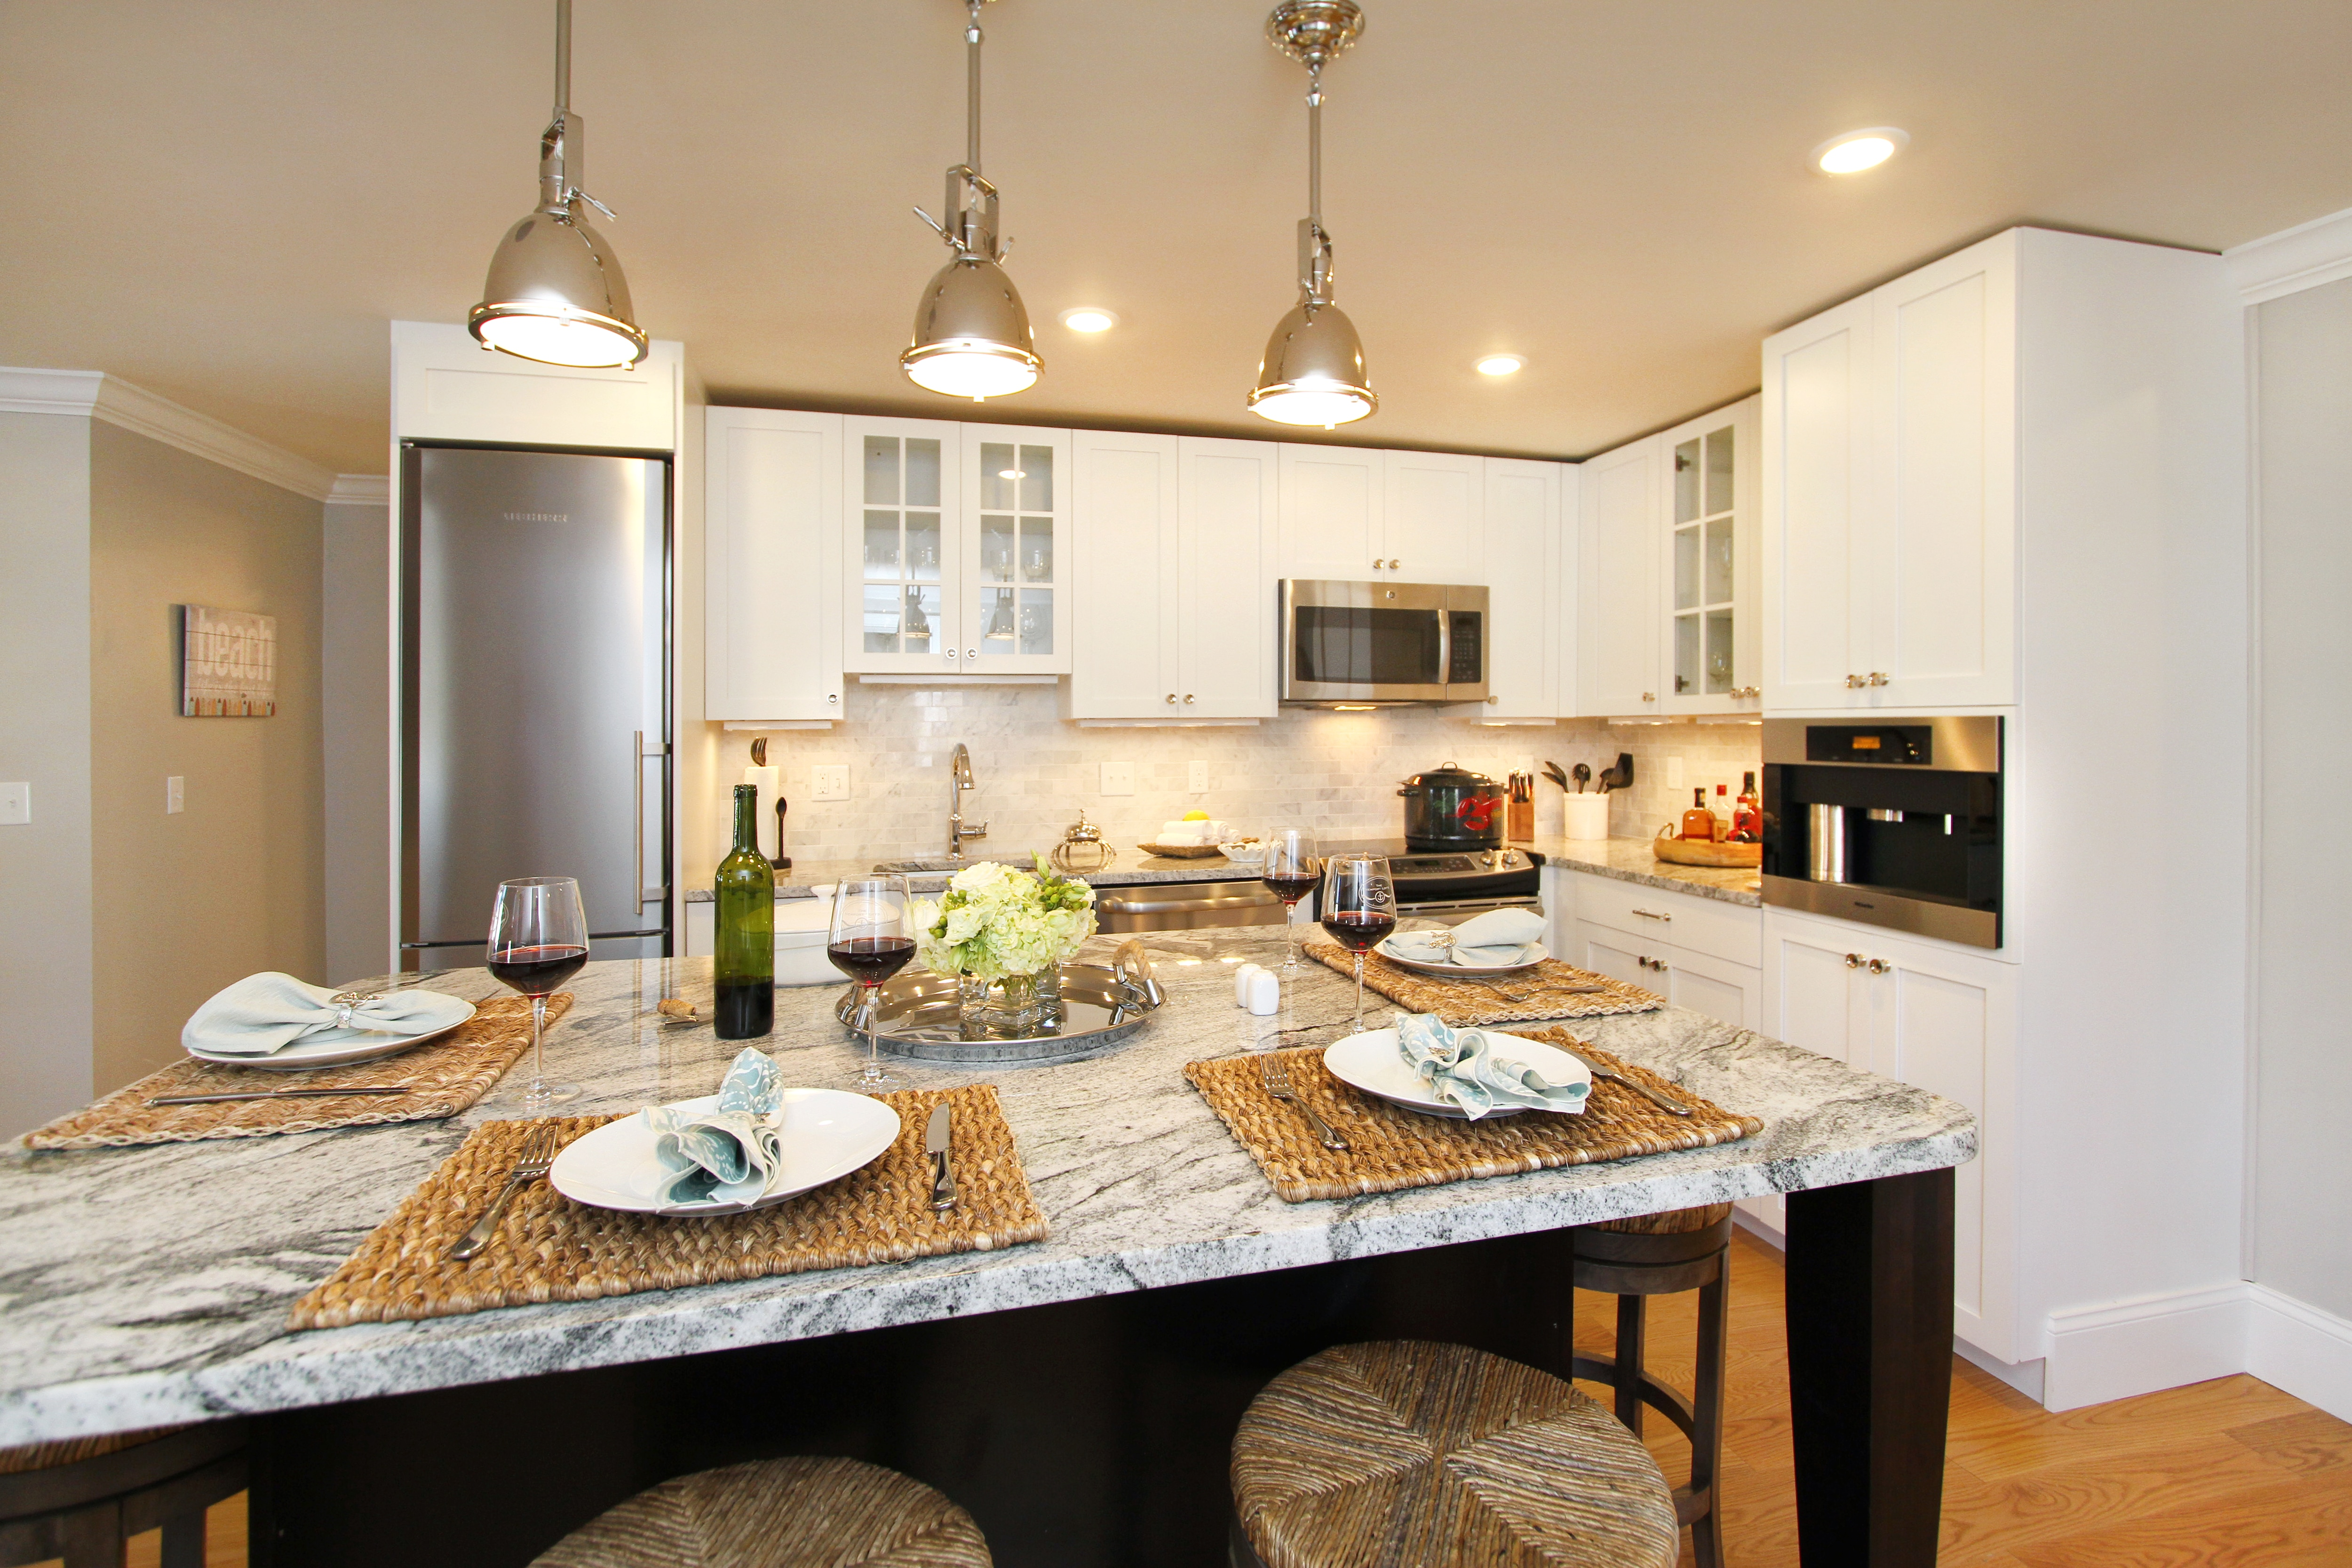 Property Image 1 - Coastal Inspired Condo with Upscale Kitchen